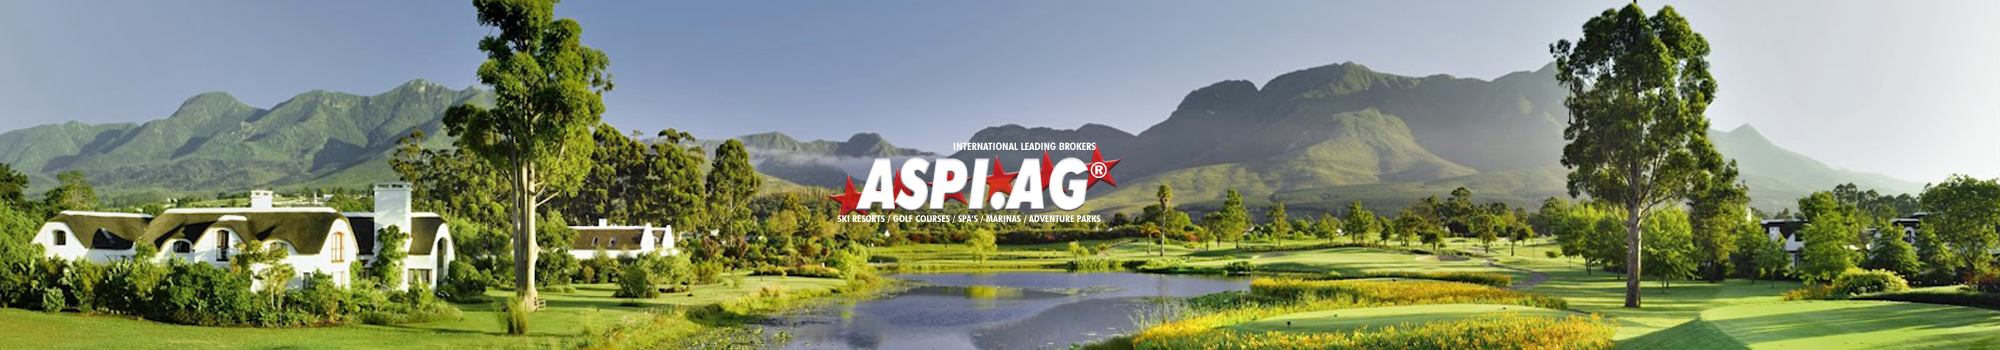 ASP Expert Broker golf courses, marinas, adventure parks, sports parks, spa's